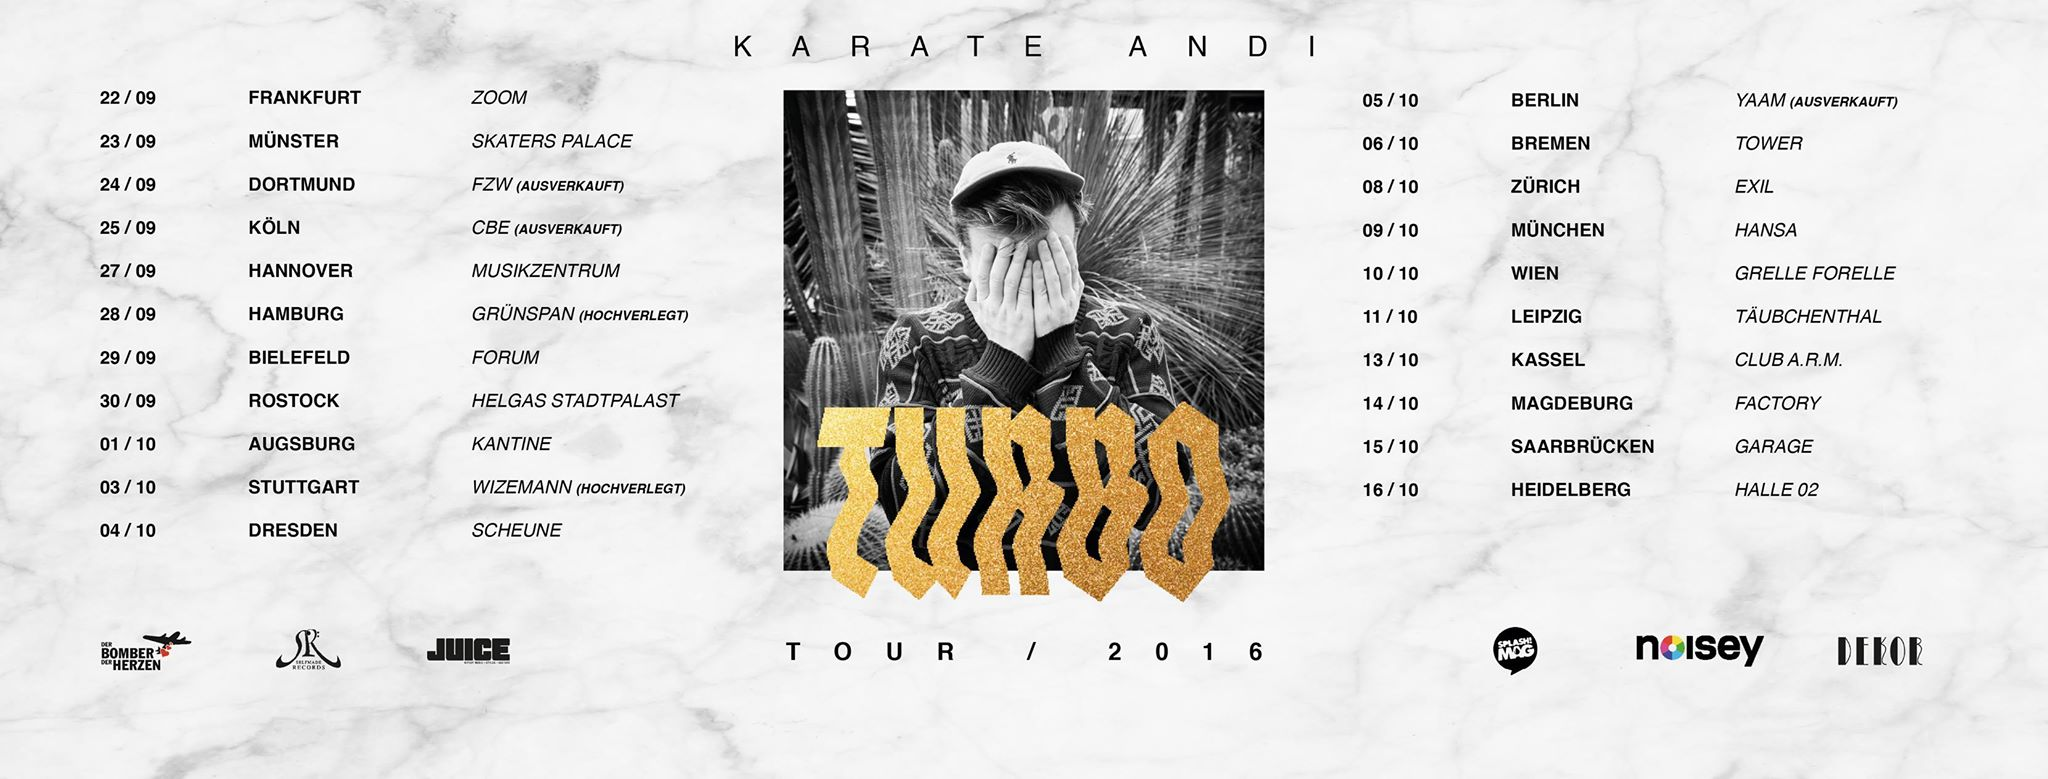 news-karate-andi-turbo-tour